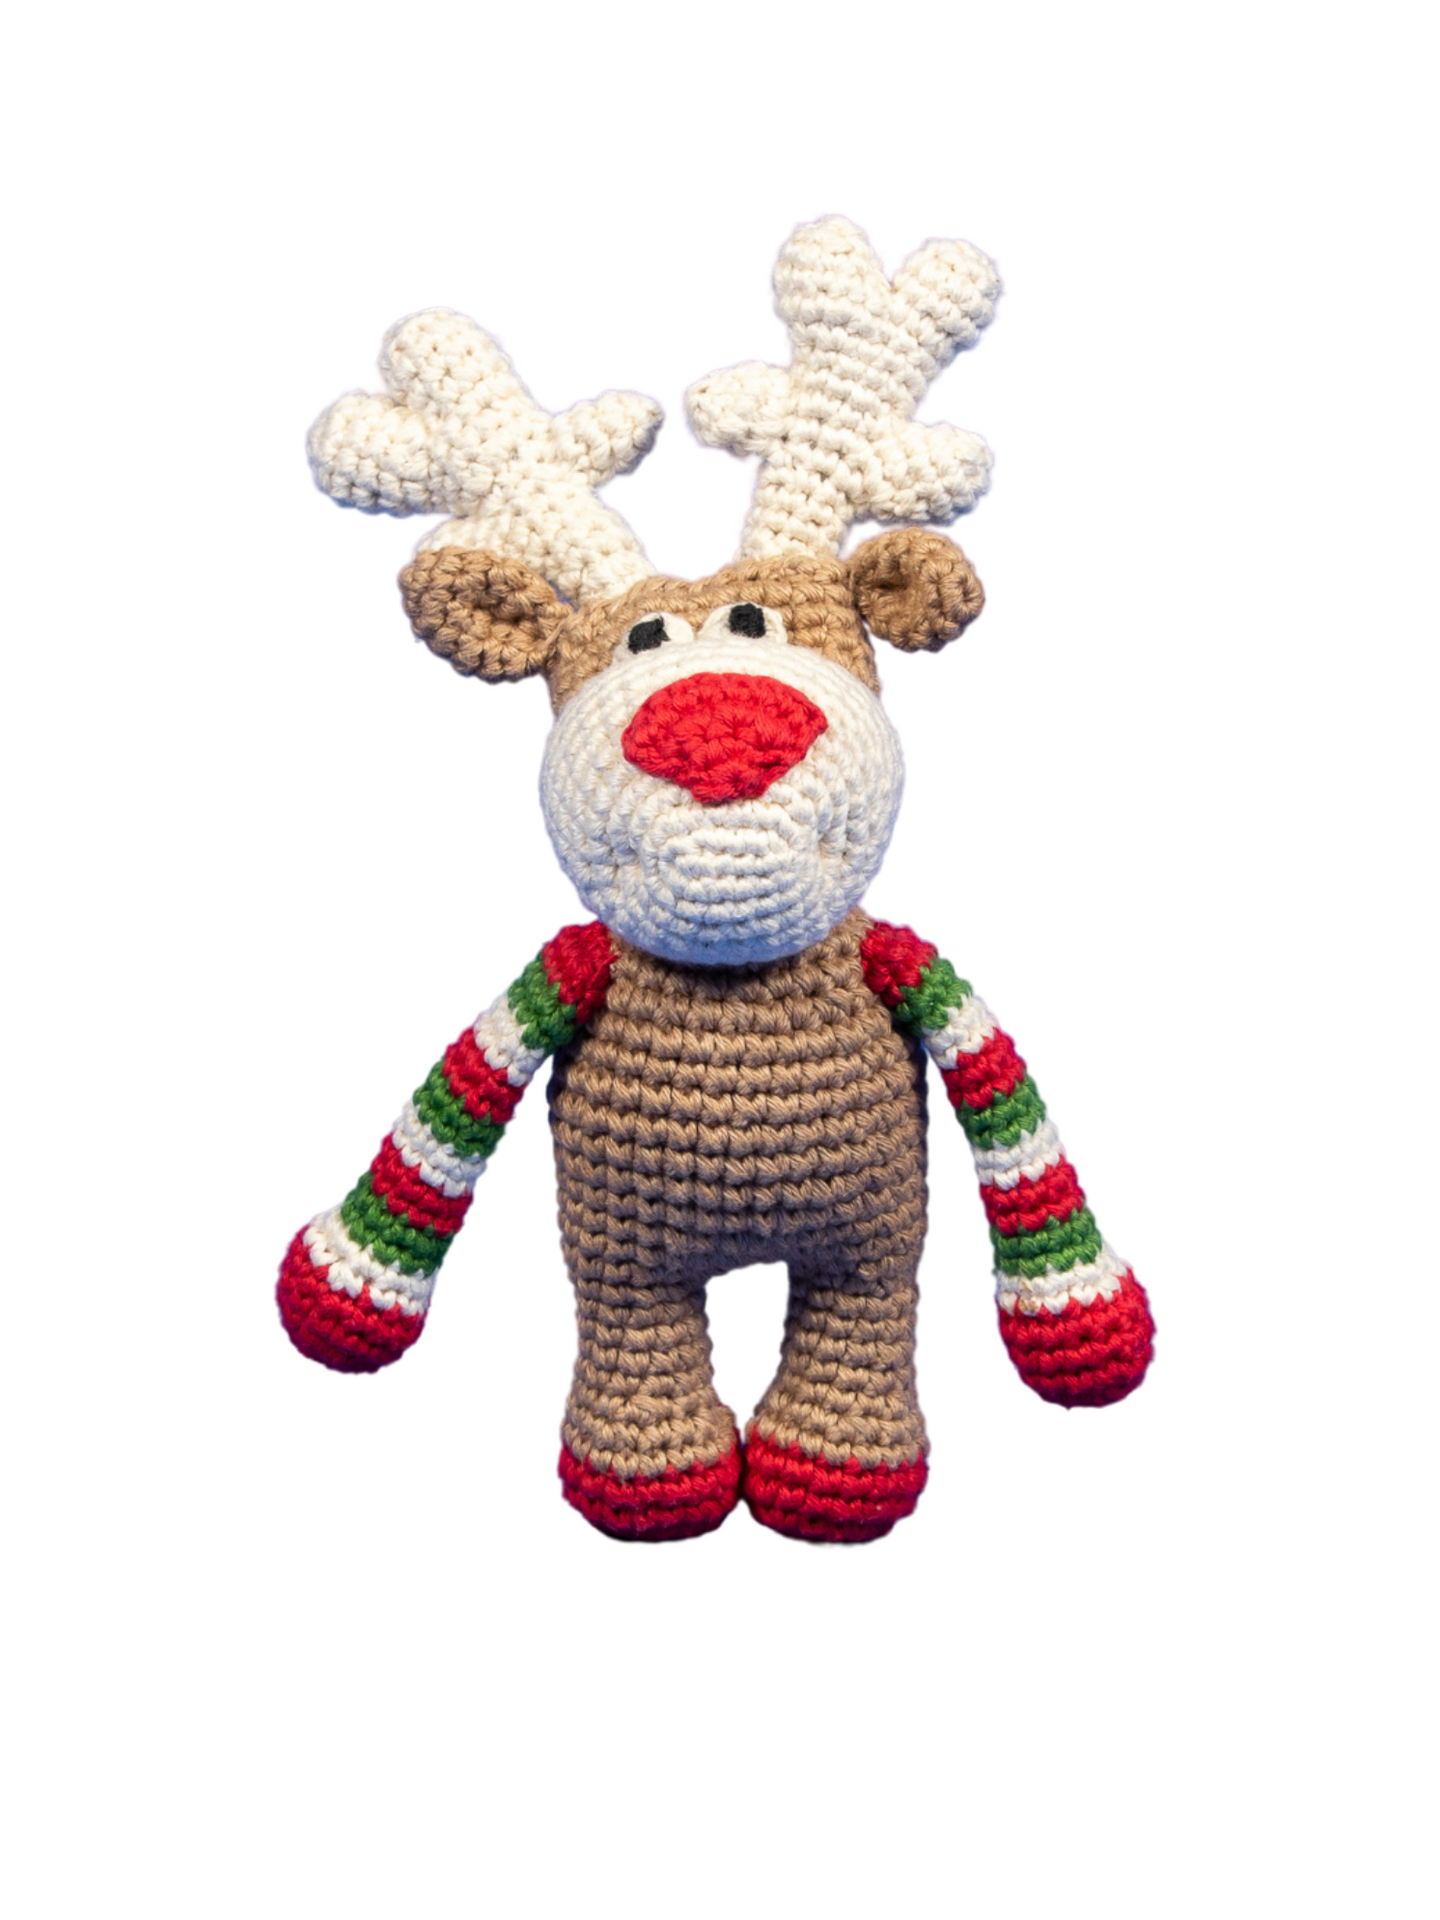 Rudolph the Reindeer Organic Crochet Squeaky Toy